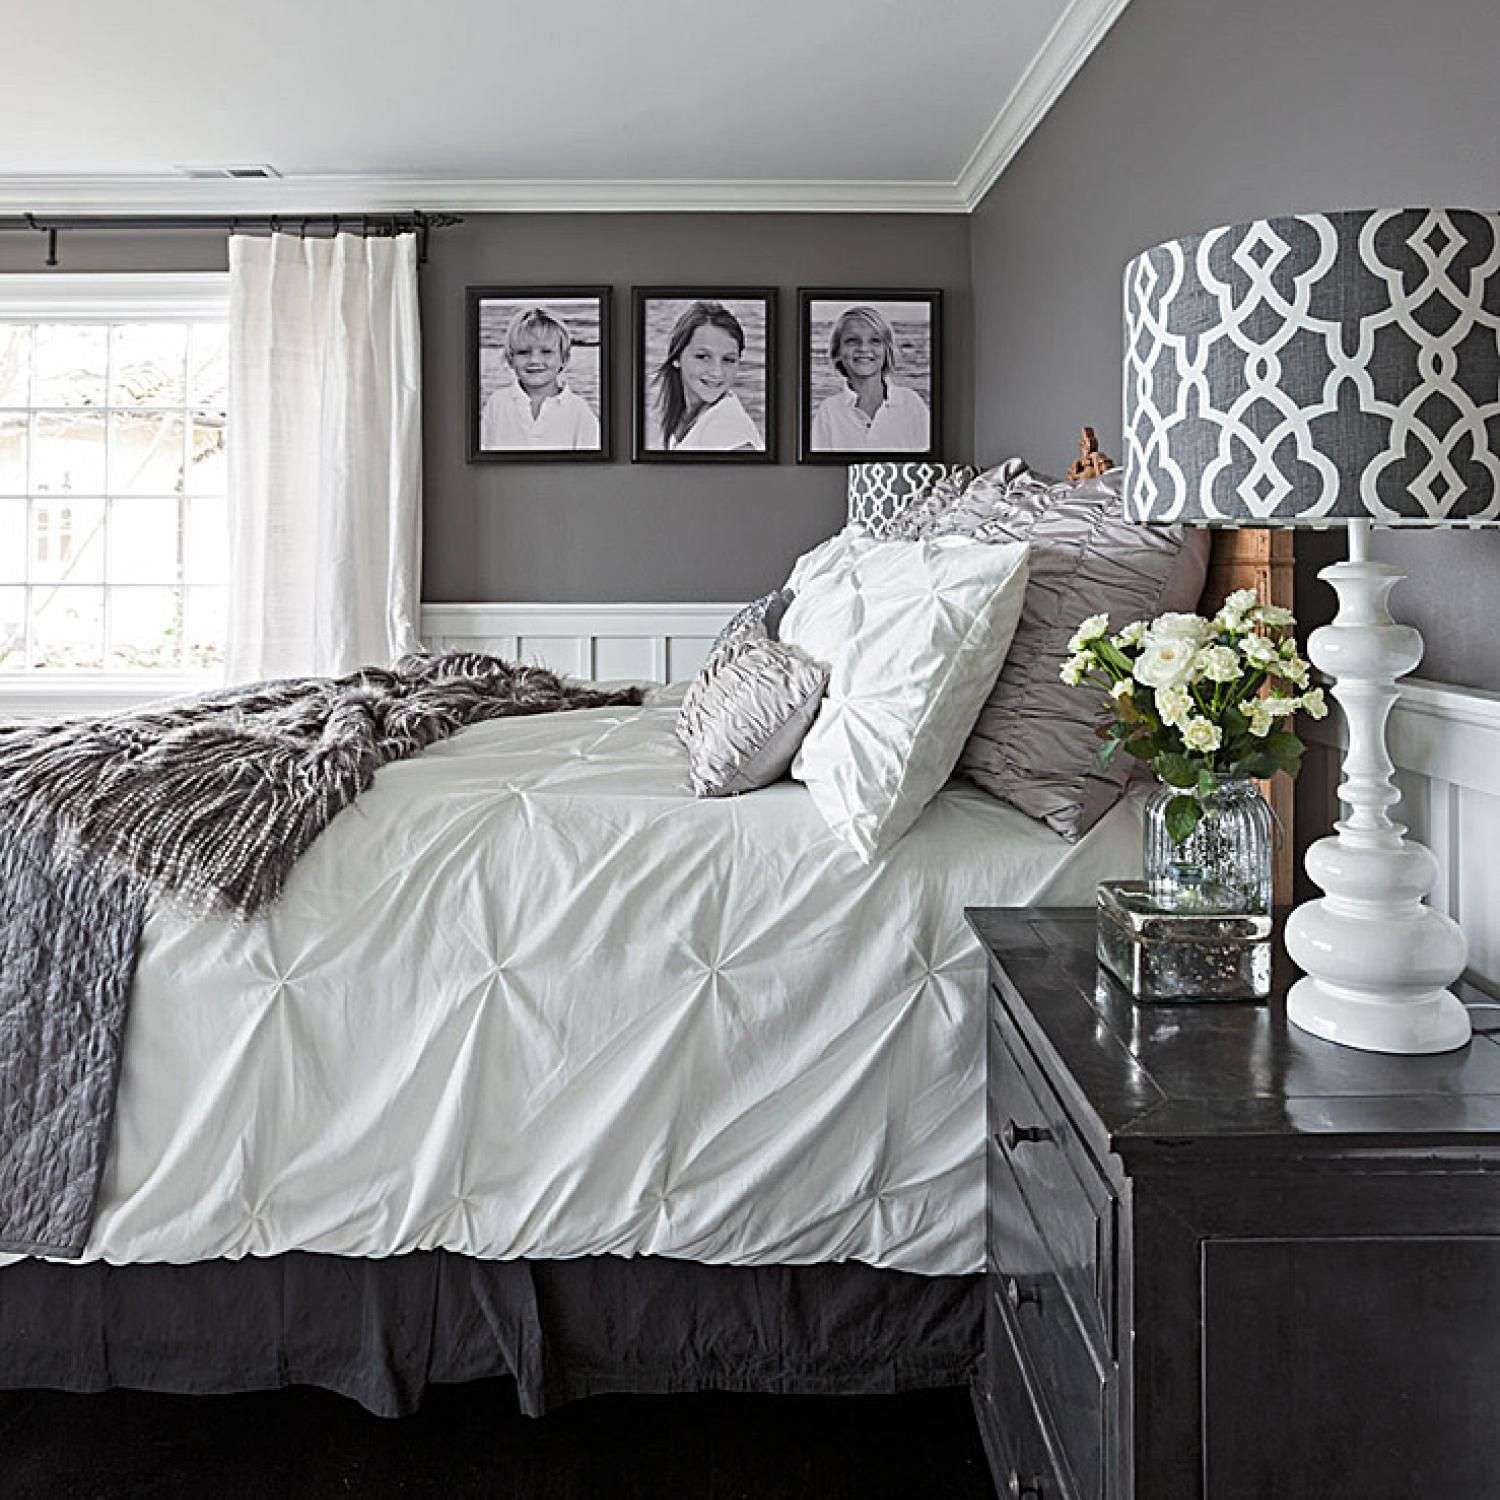 Bedroom Design Ideas Gray Walls gorgeous gray-and-white bedrooms | bedrooms | pinterest | bedrooms